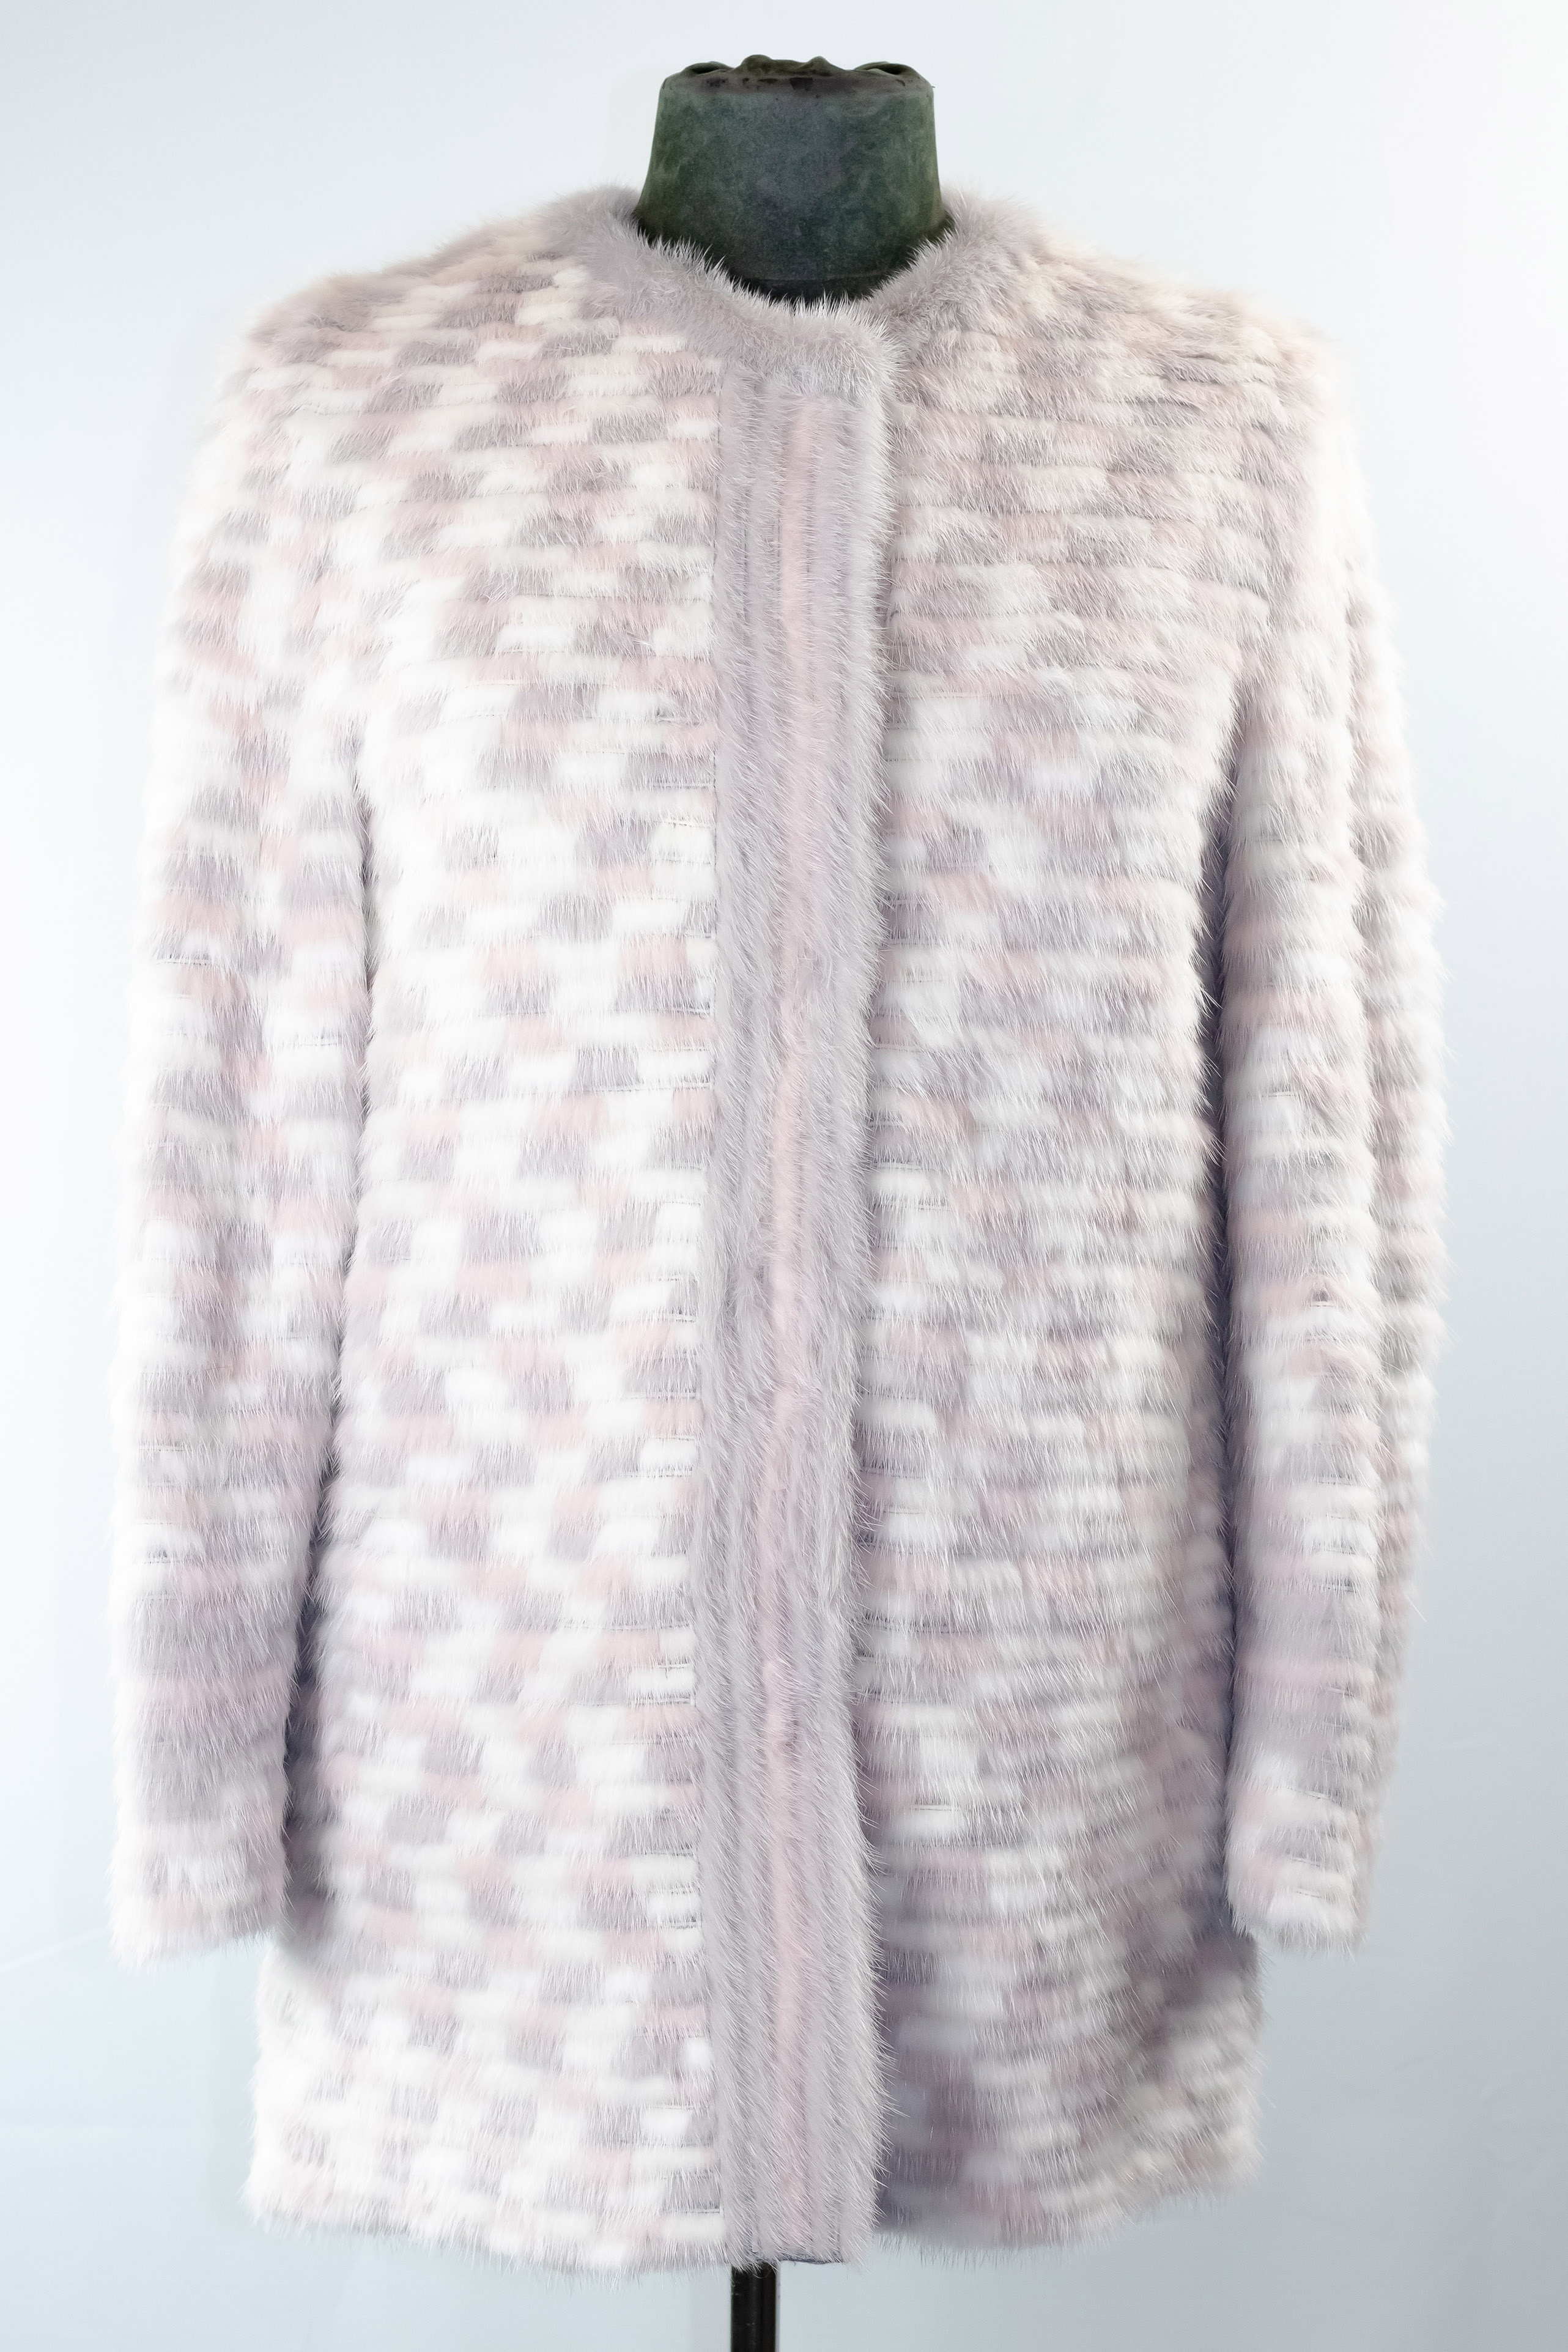 Multi-Tone Horizontal Mink Jacket with Yoke Collar